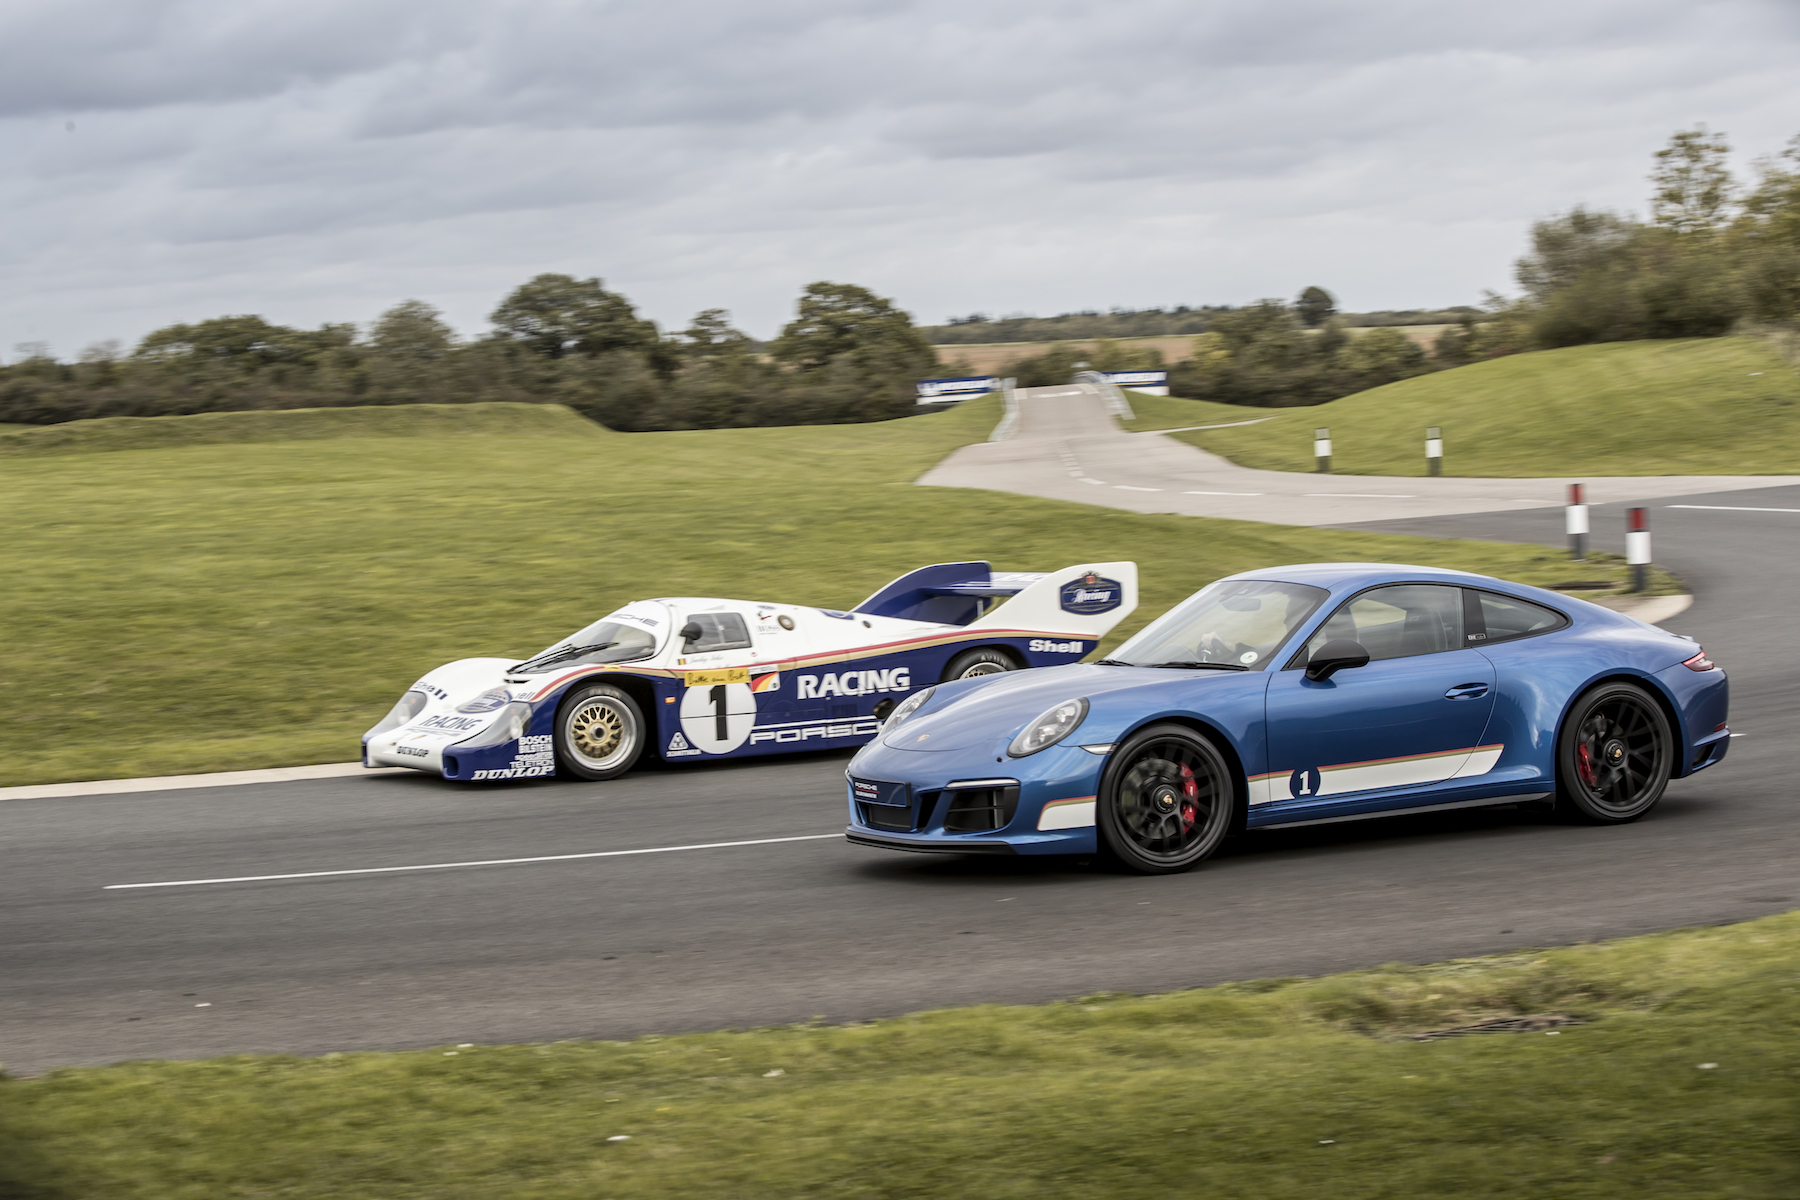 Revive special moments with the Porsche 911 GTS British Legends